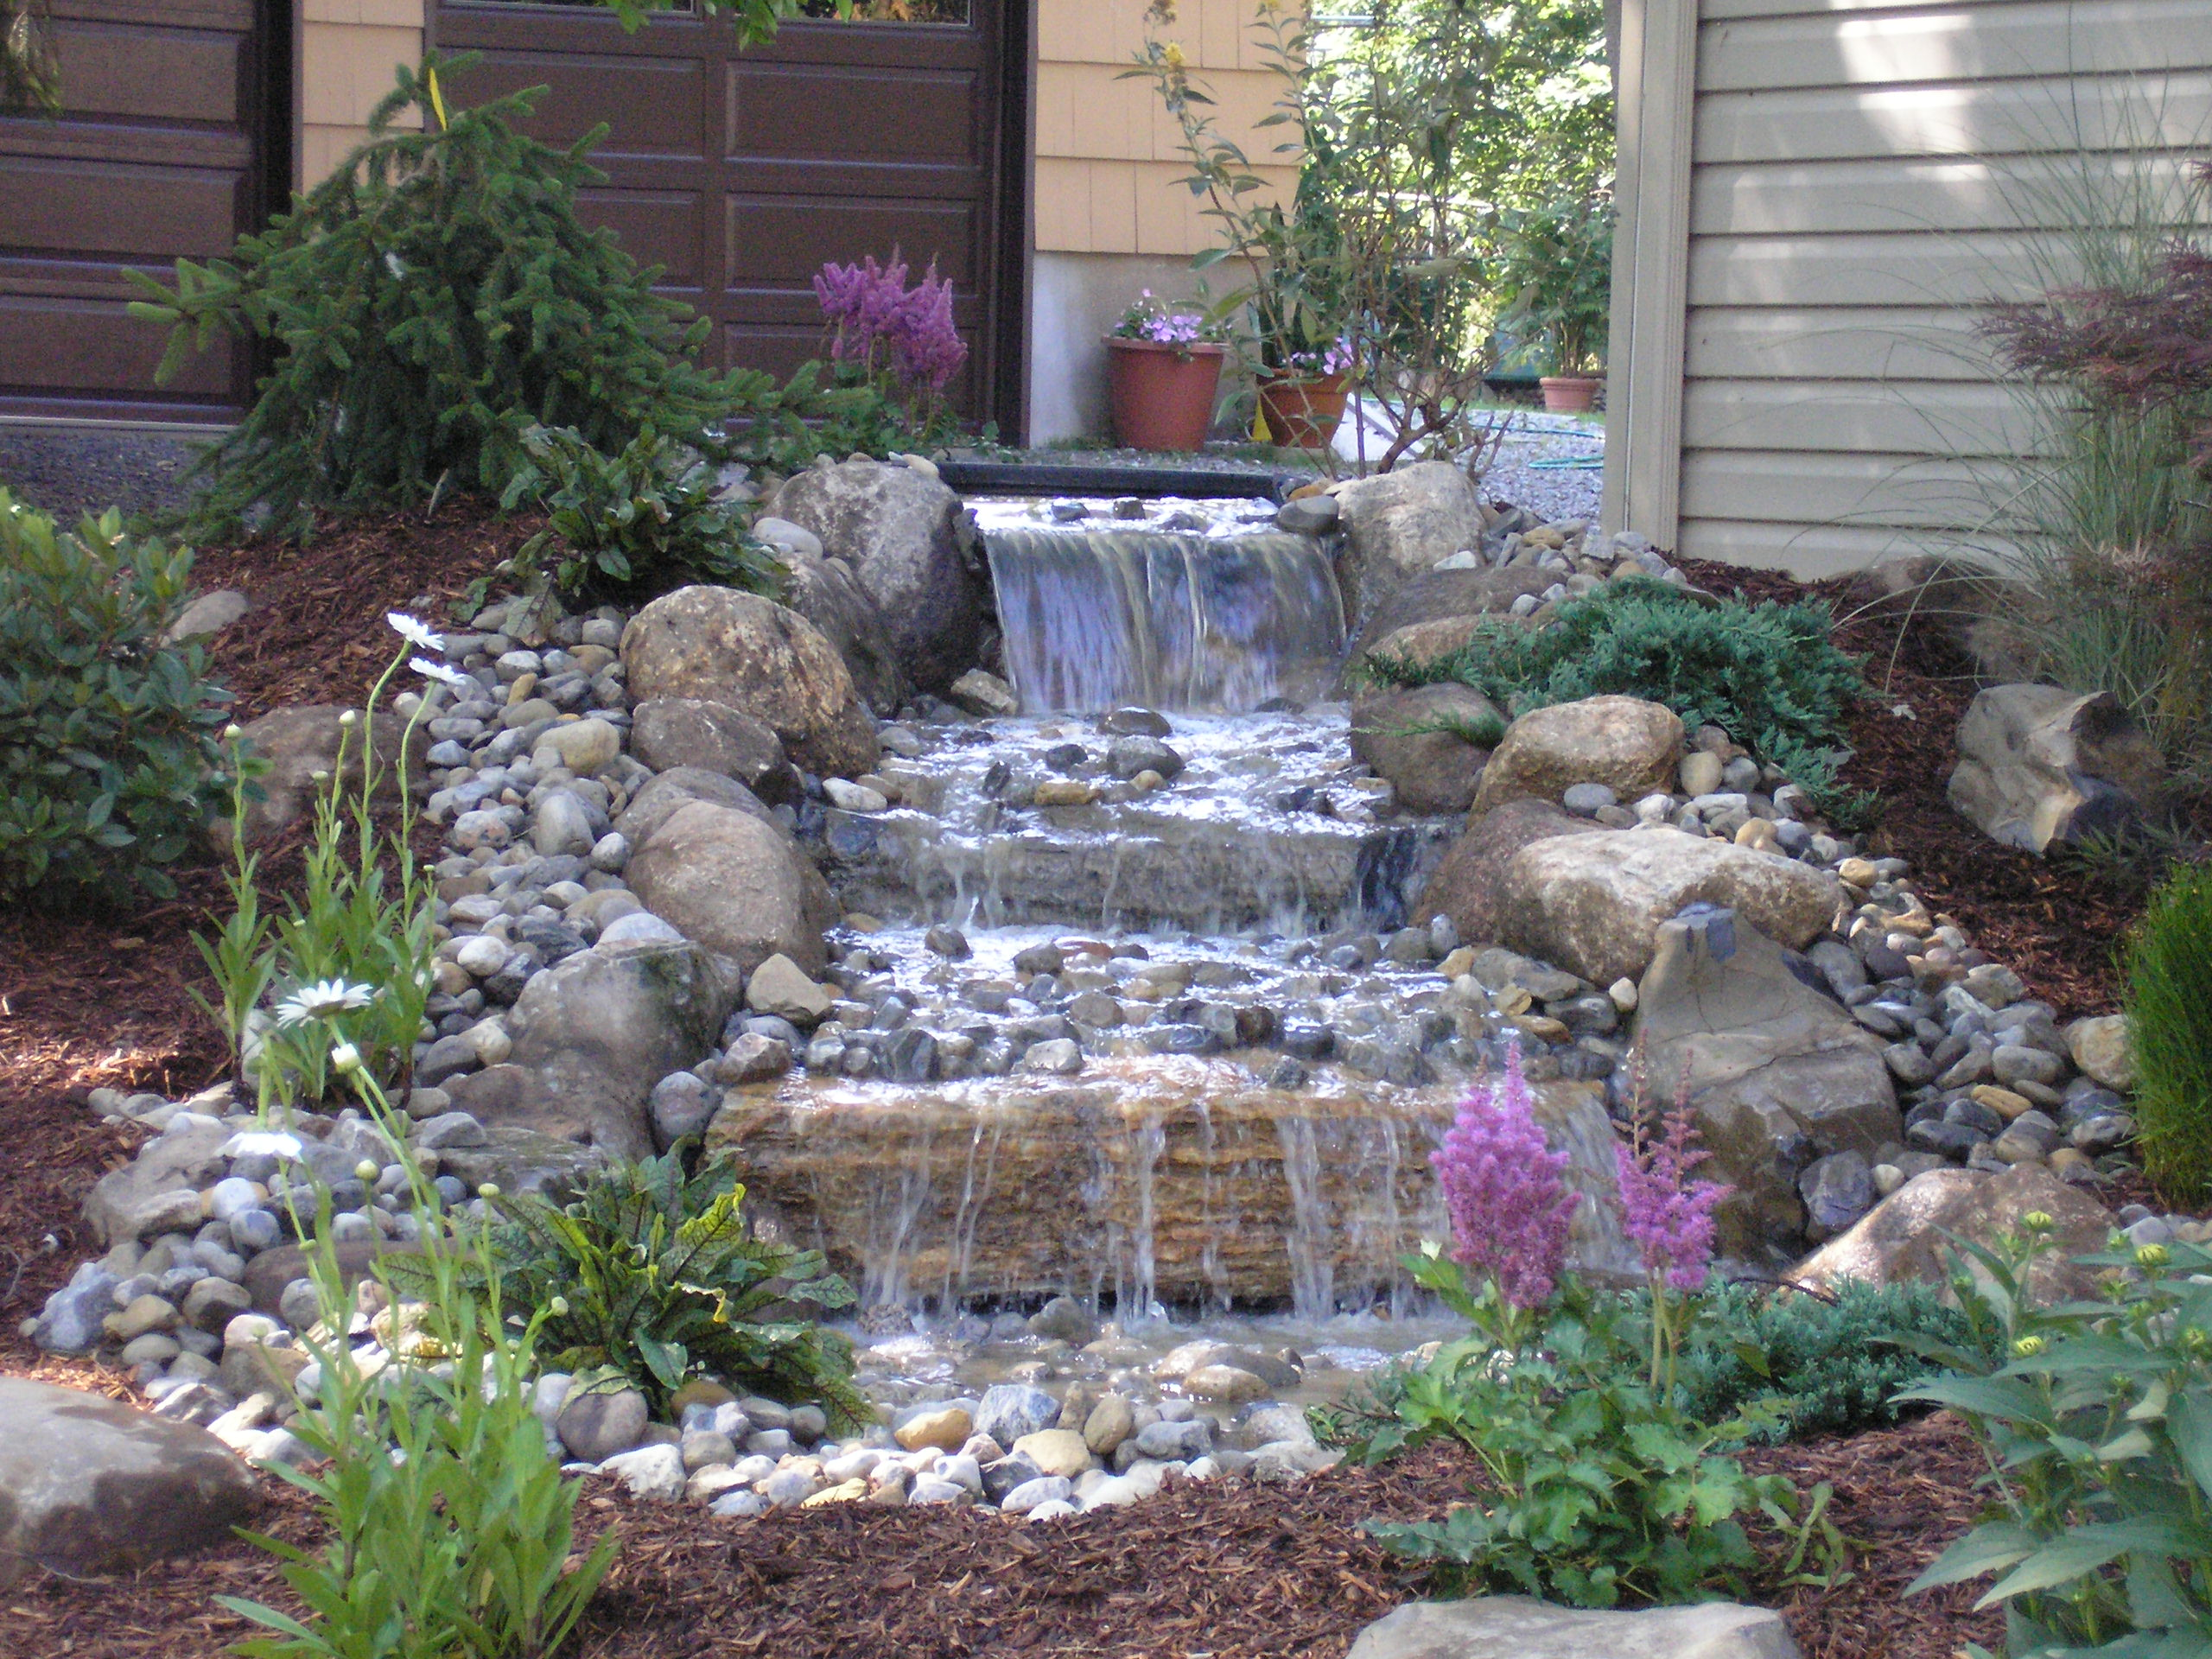 Pondless waterfall diy pond ideas water gardens for Build your own waterfall pond